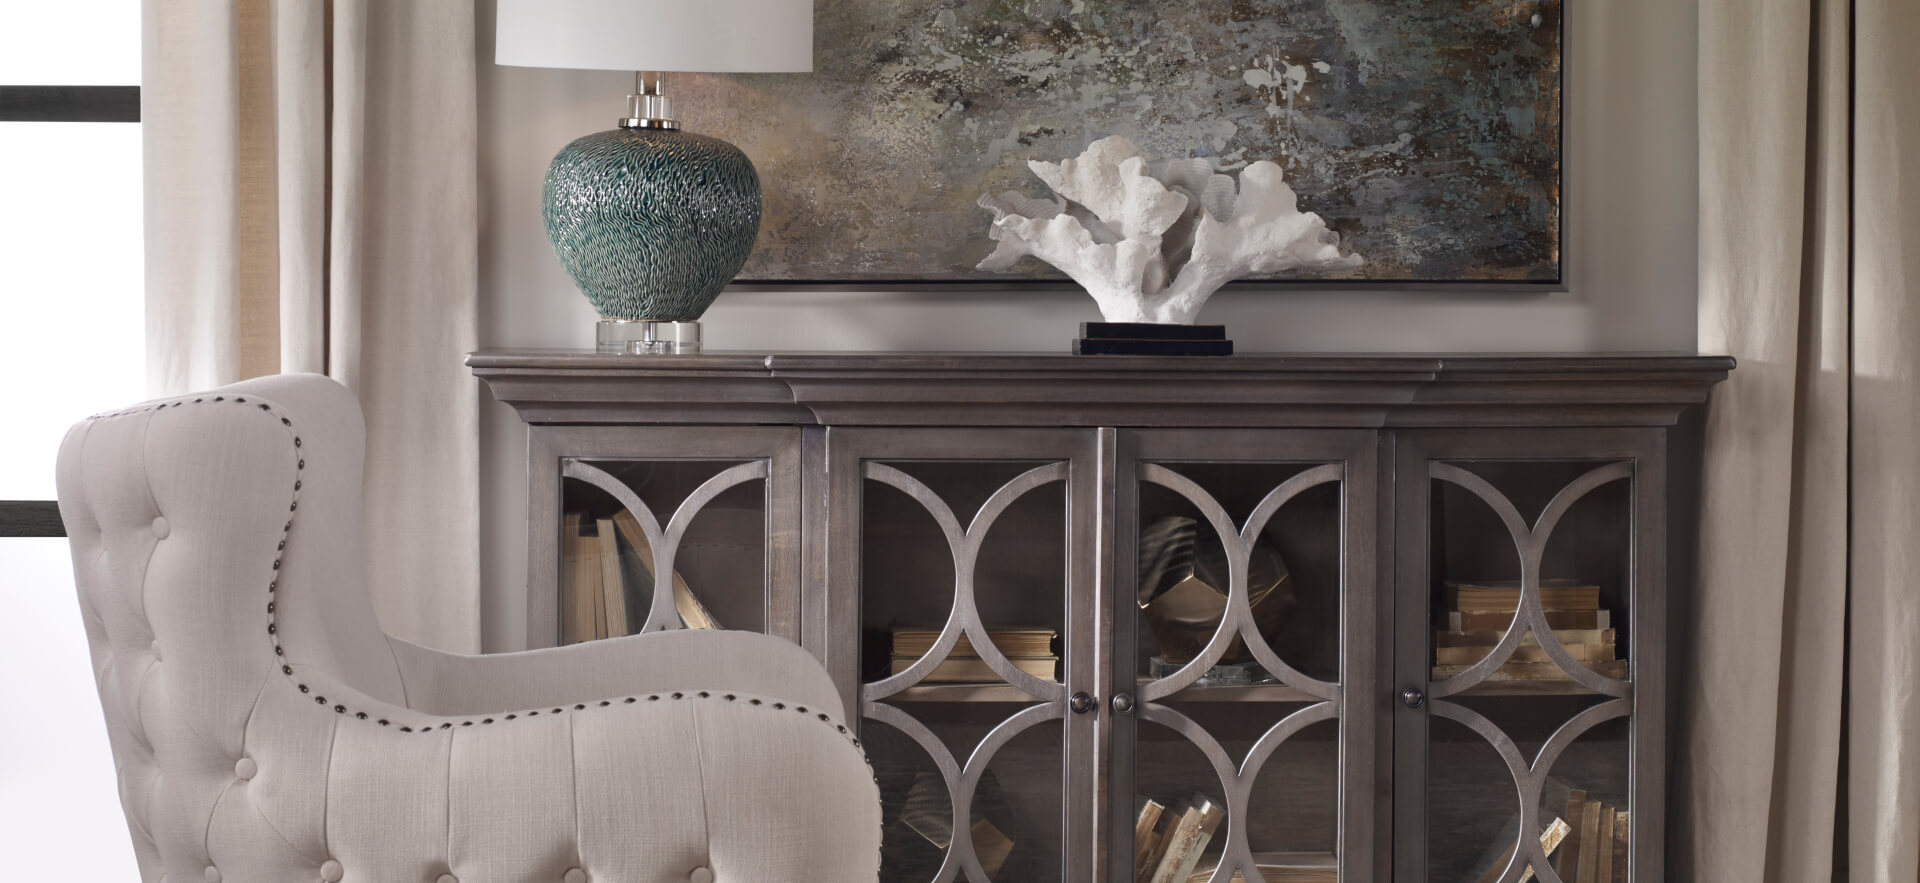 Wholesale Uttermost Accent Furniture, Mirrors, Wall Decor Intended For Traditional/coastal Accent Mirrors (View 15 of 20)